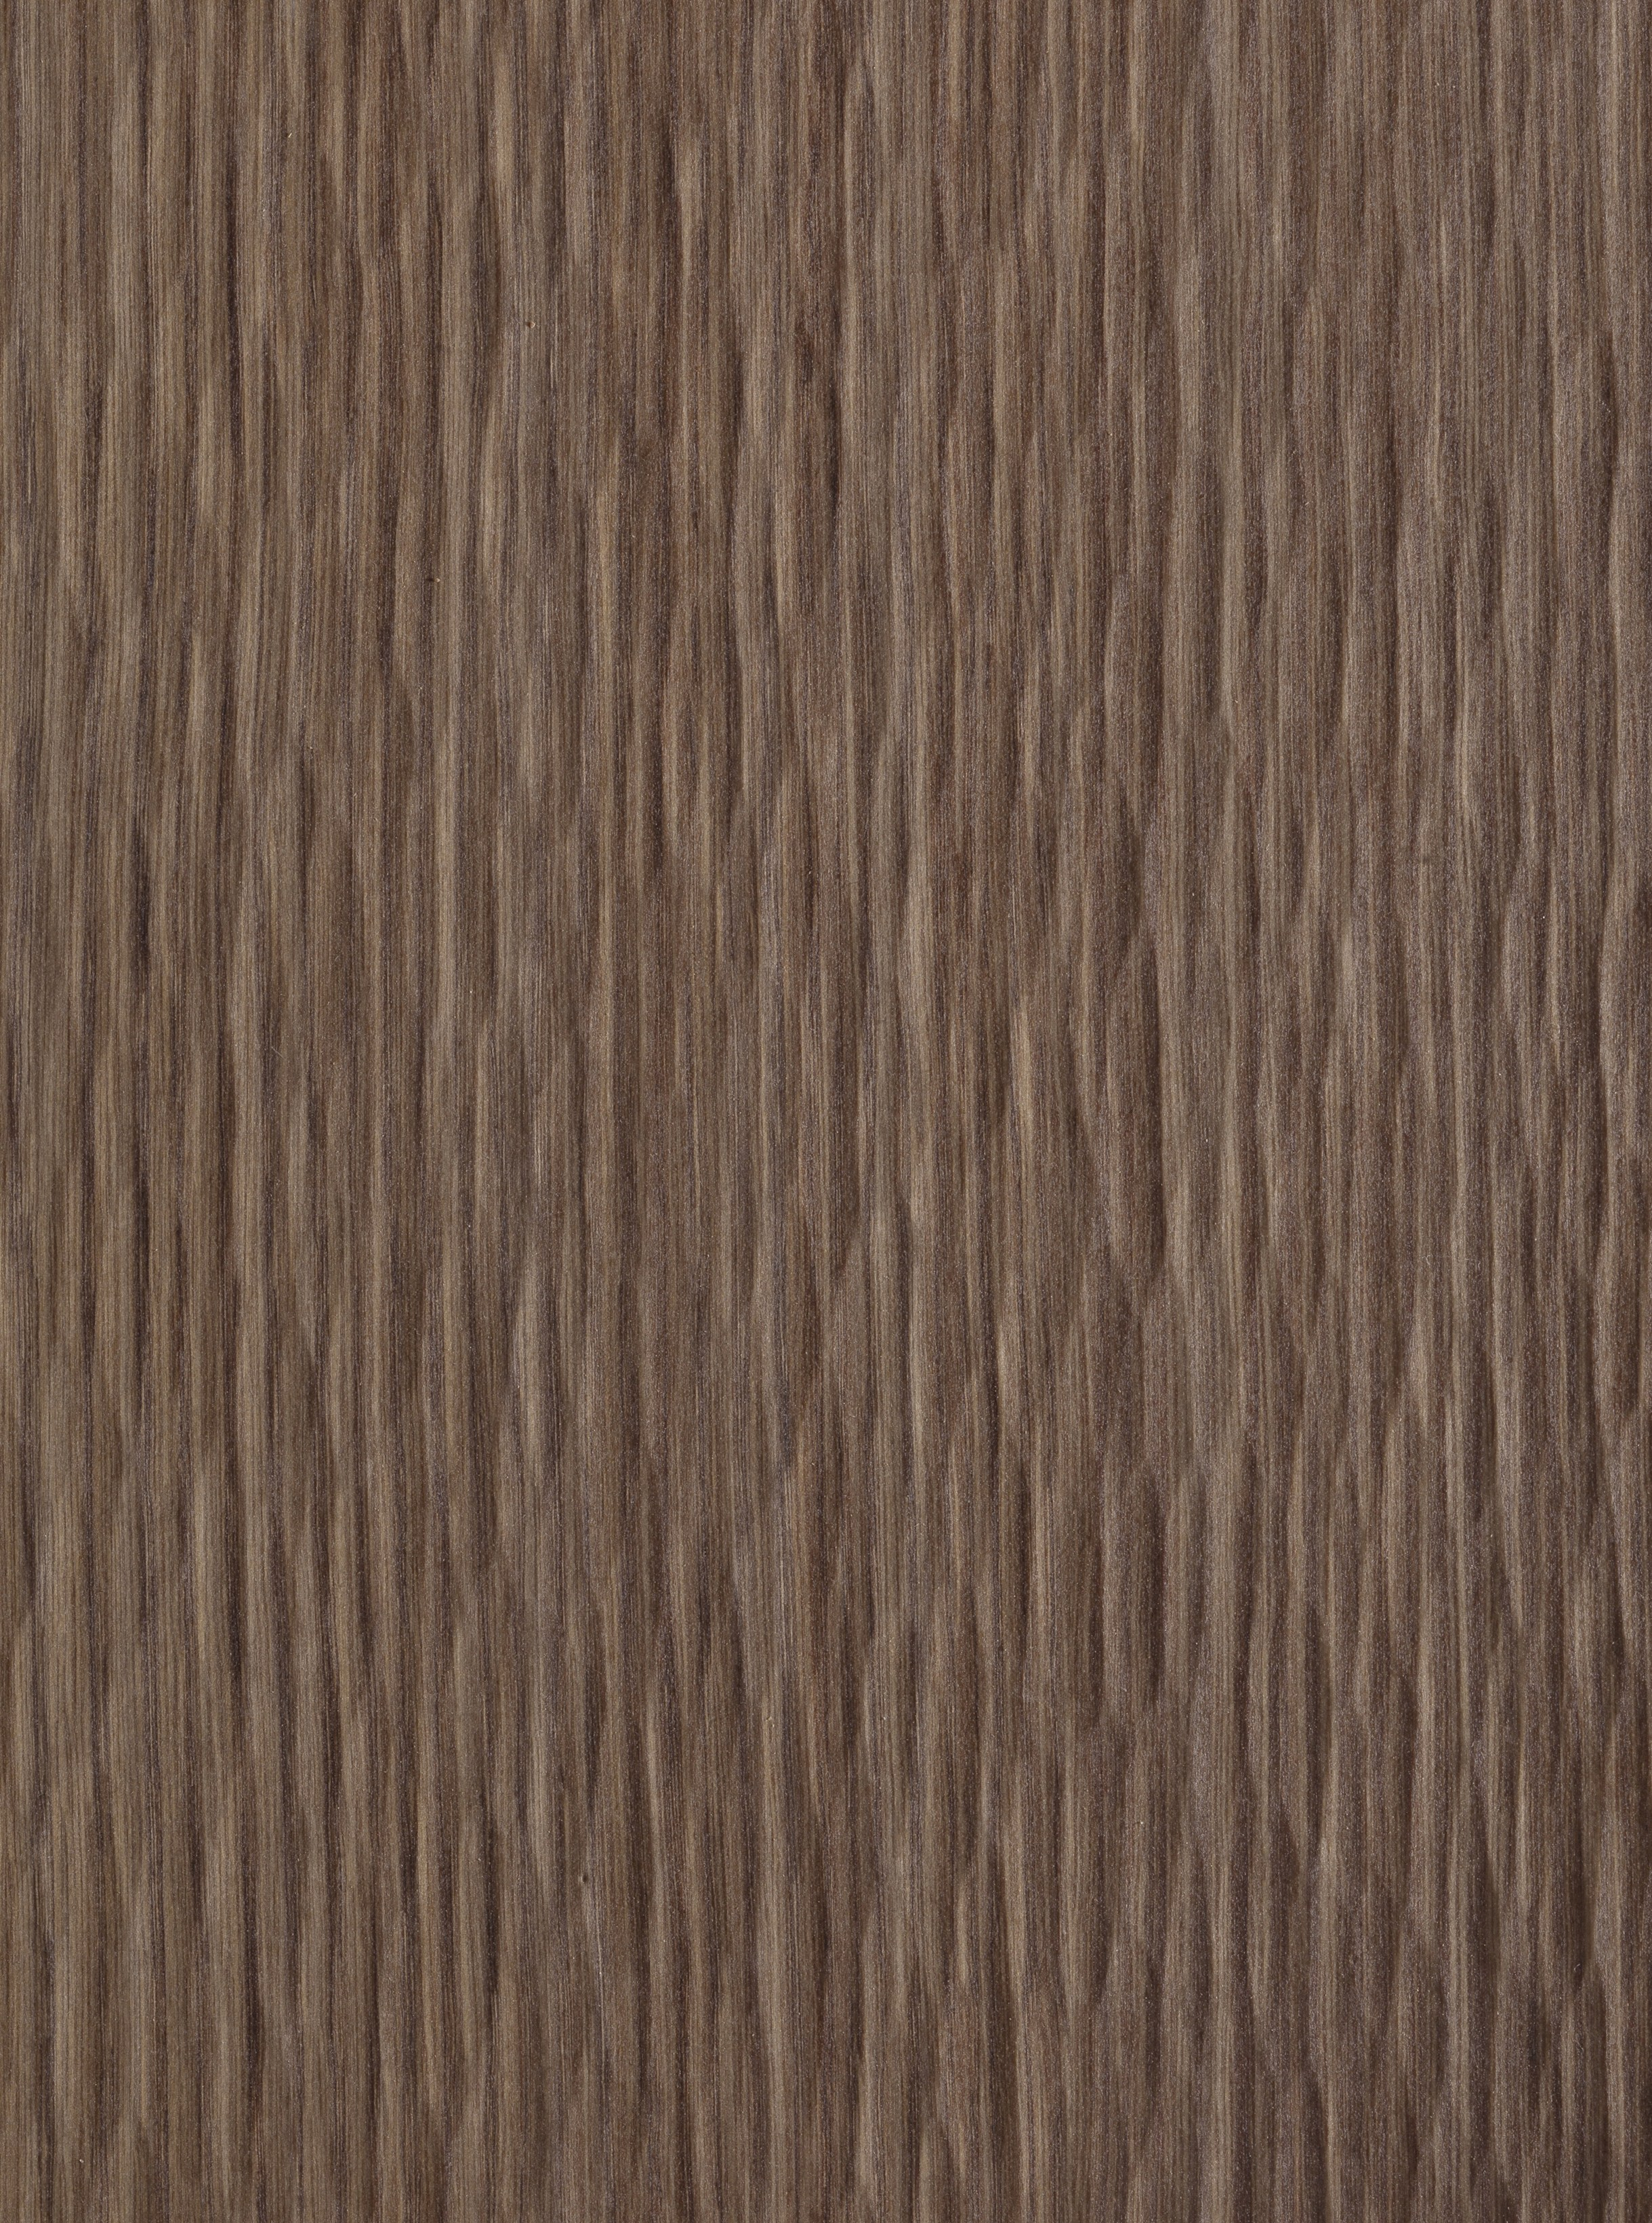 Laminate Table Top Textured Wood By Oberflex 174